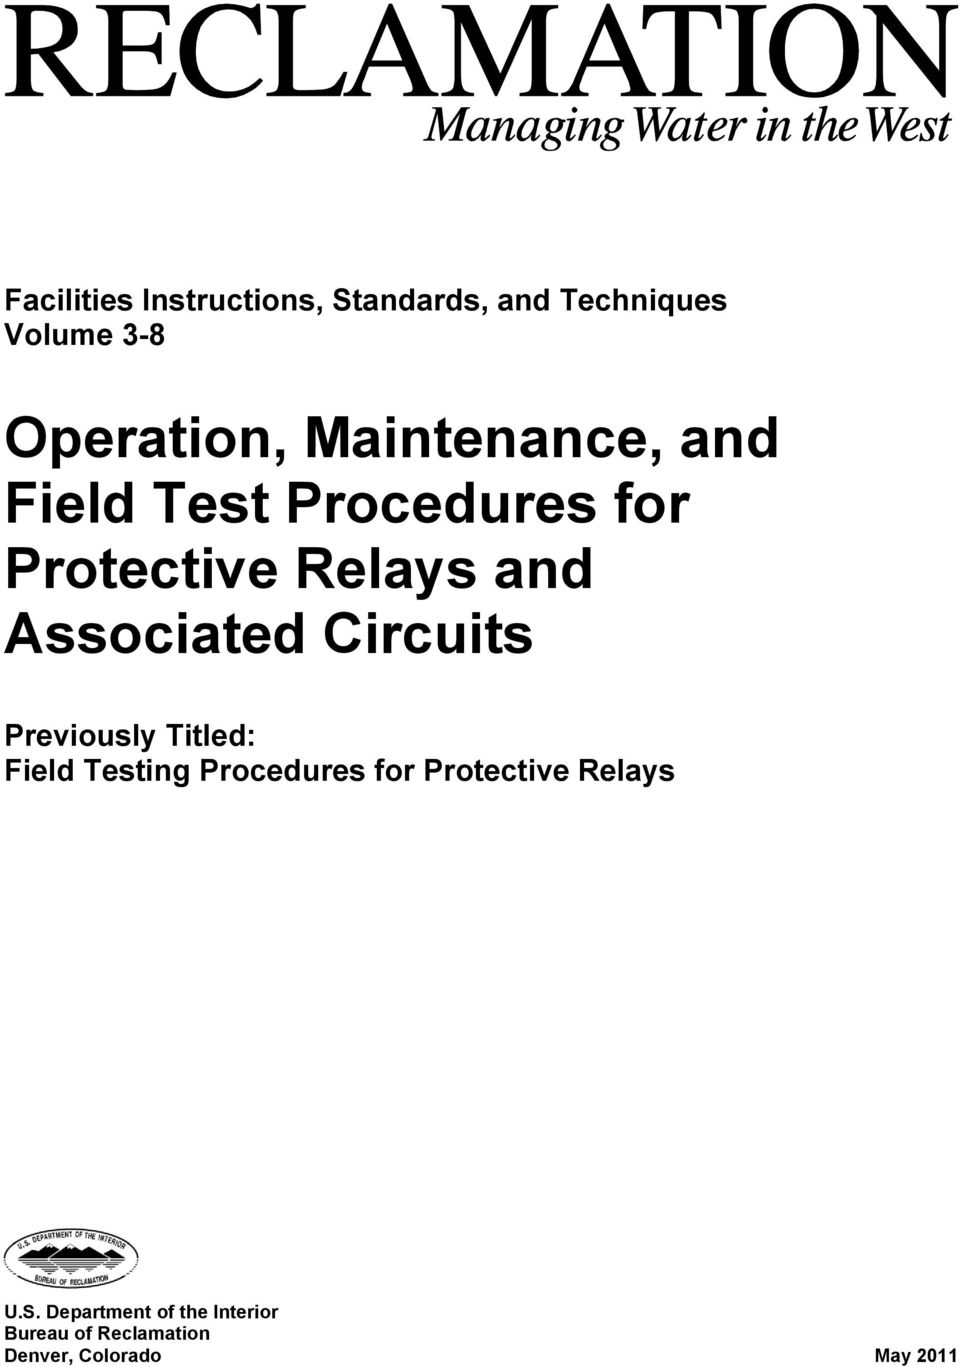 Operation, Maintenance, and Field Test Procedures for